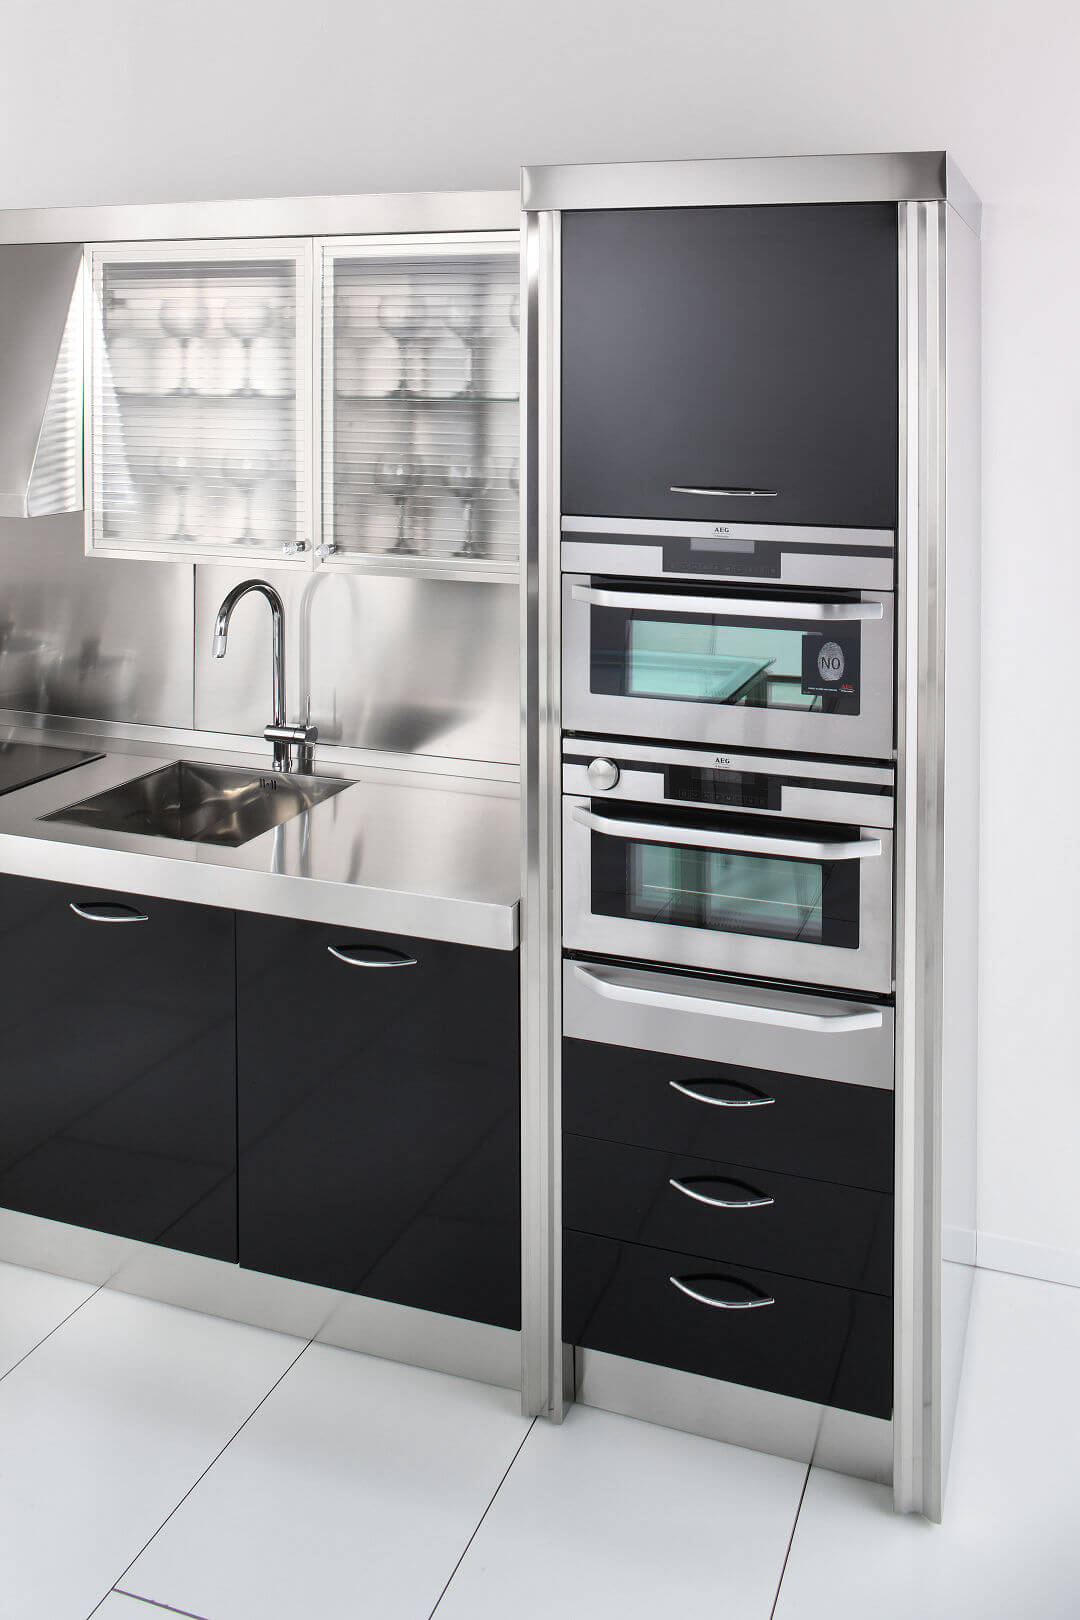 Arca Cucine Italy - Domestic stainless steel kitchens - 15 - Essex - ovens